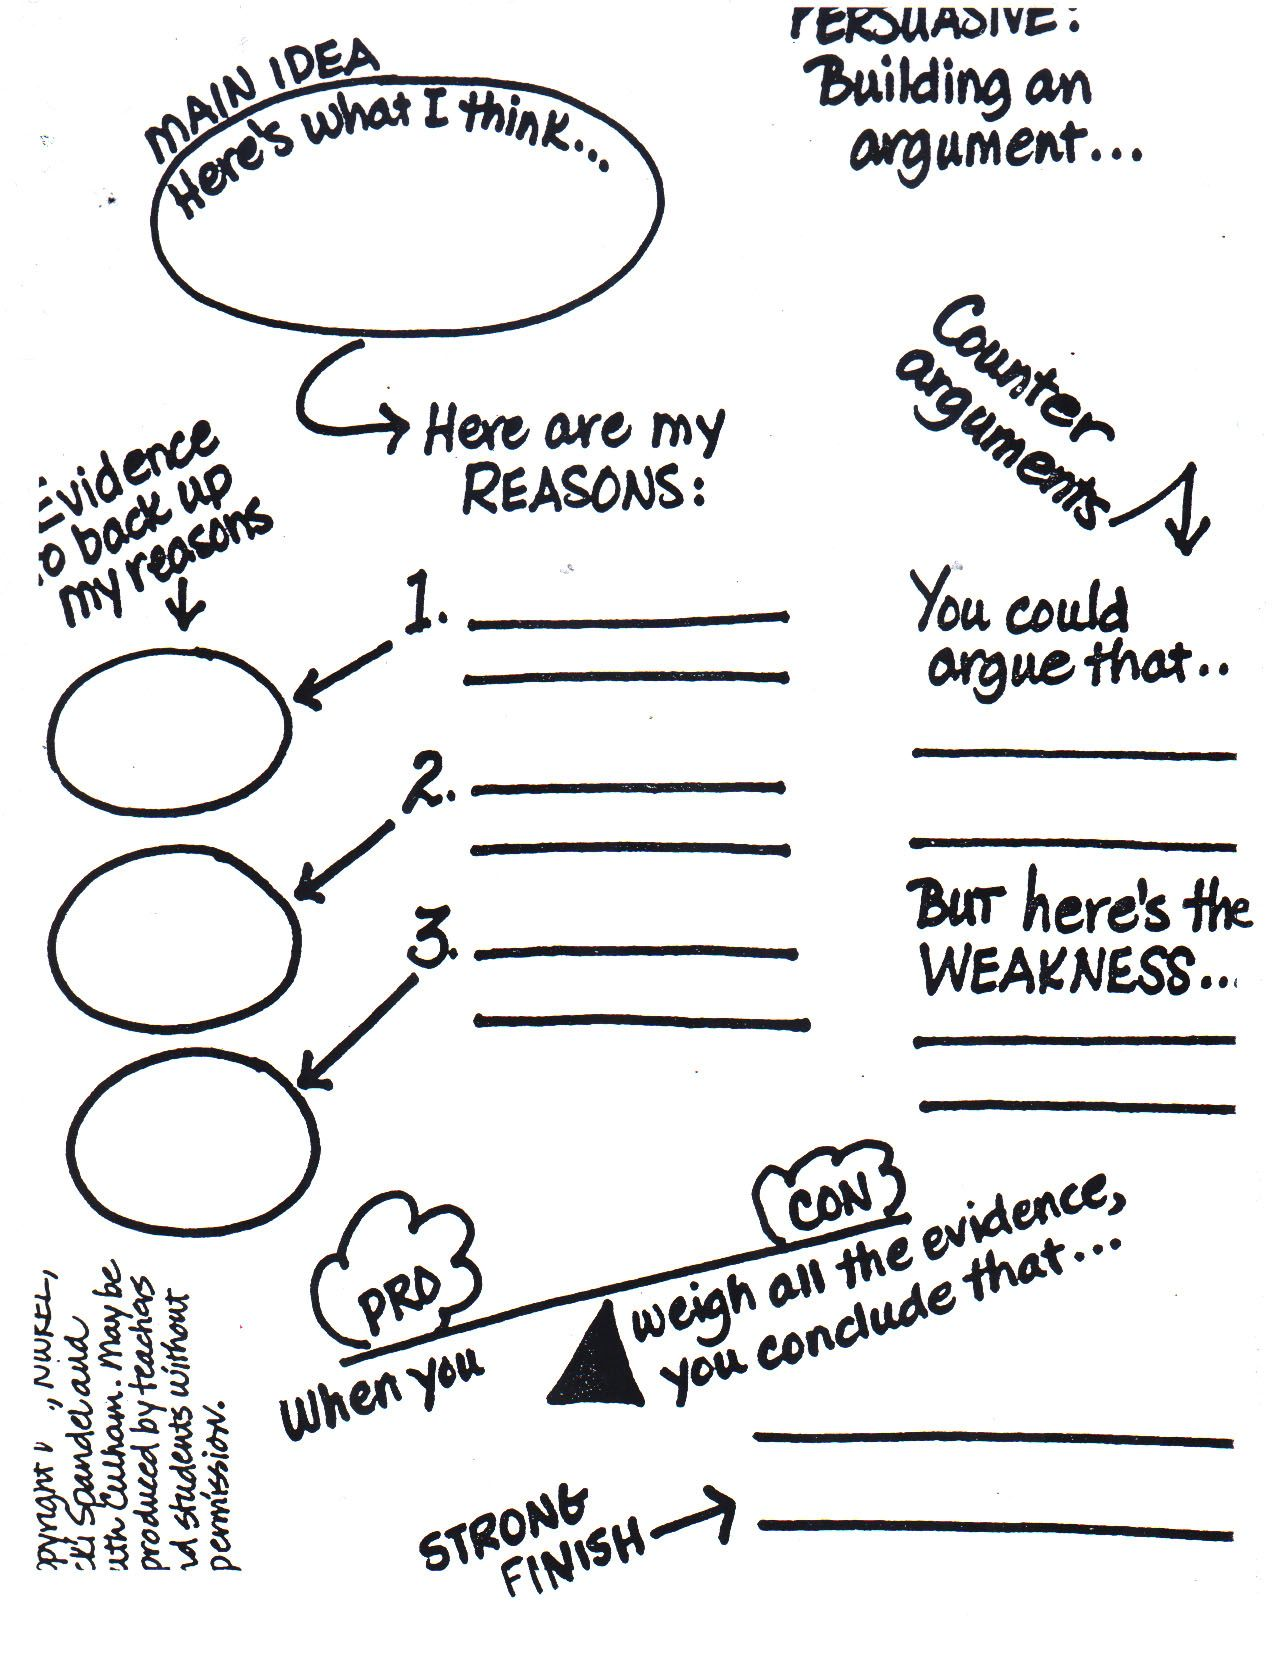 Persuasive Writing Graphic organizers School and Persuasive writing